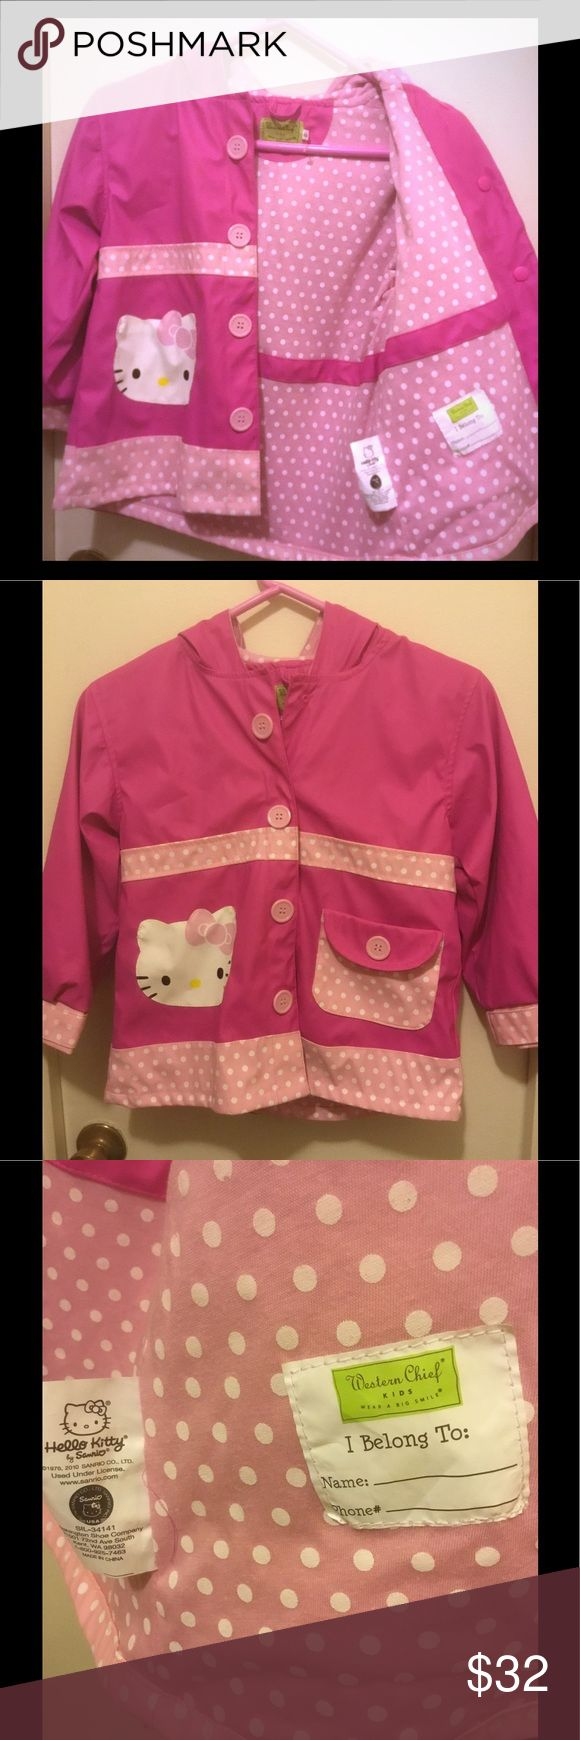 Girls Kids Western Chief HELLO KITTY Pink Girls Kids Western Chief HELLO KITTY Pink Polka-Dot Hooded Raincoat - Size 6-6x  As seen on scan, this is the exact item you will receive   Cute rain gear for your little one. New w/o tags.  Pet-free & smoke-free  Thank you! Western Chief Jackets & Coats Capes